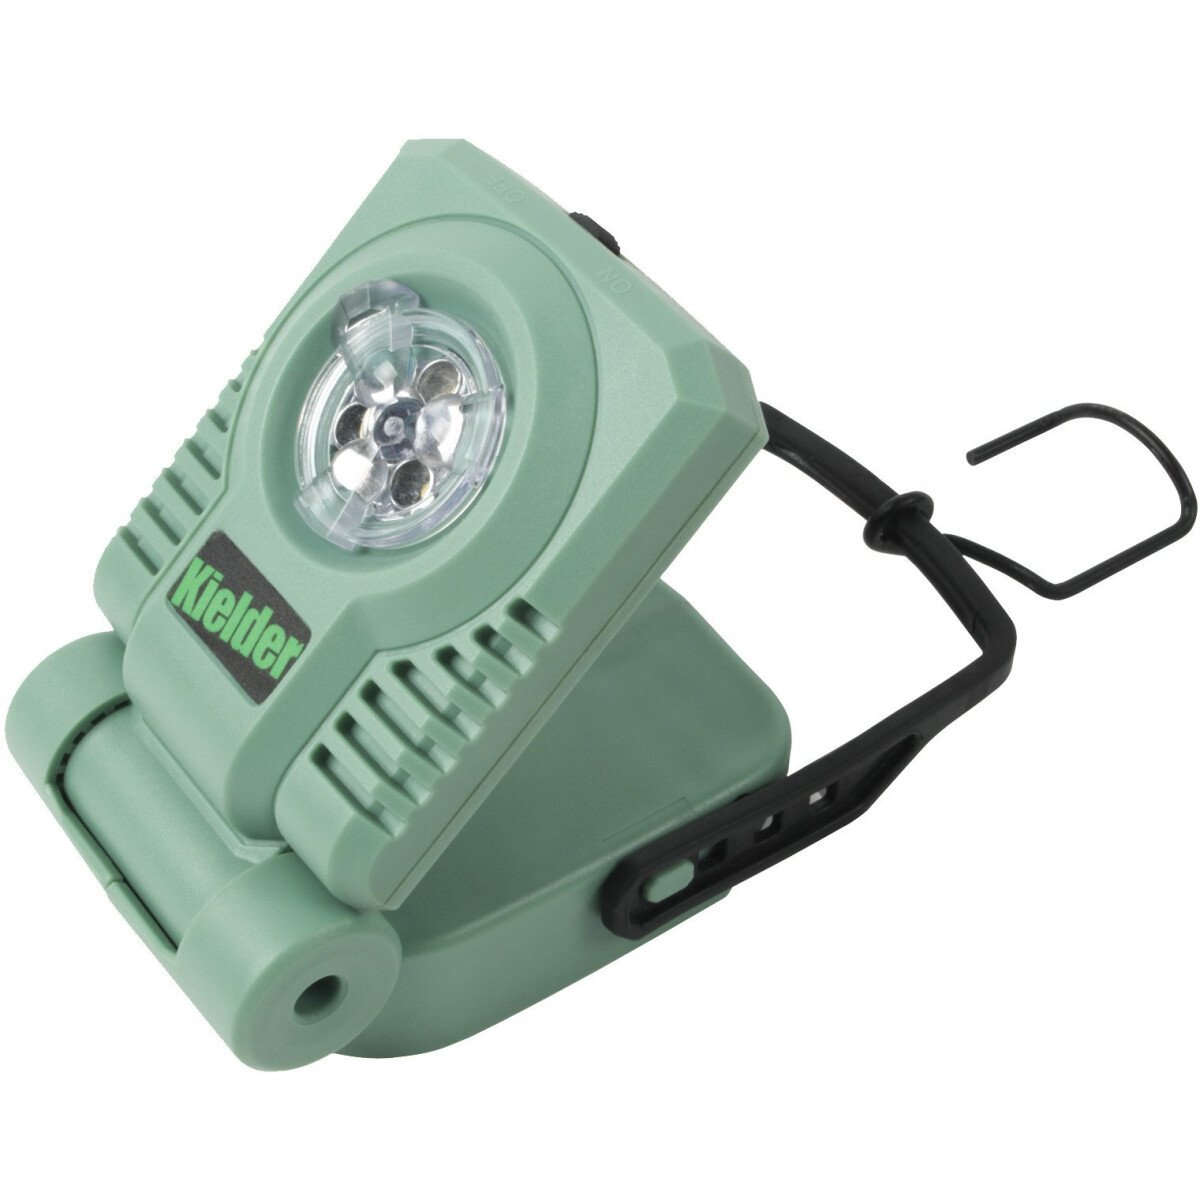 Kielder KWT-006-06 Body Only 18V LED Work Light